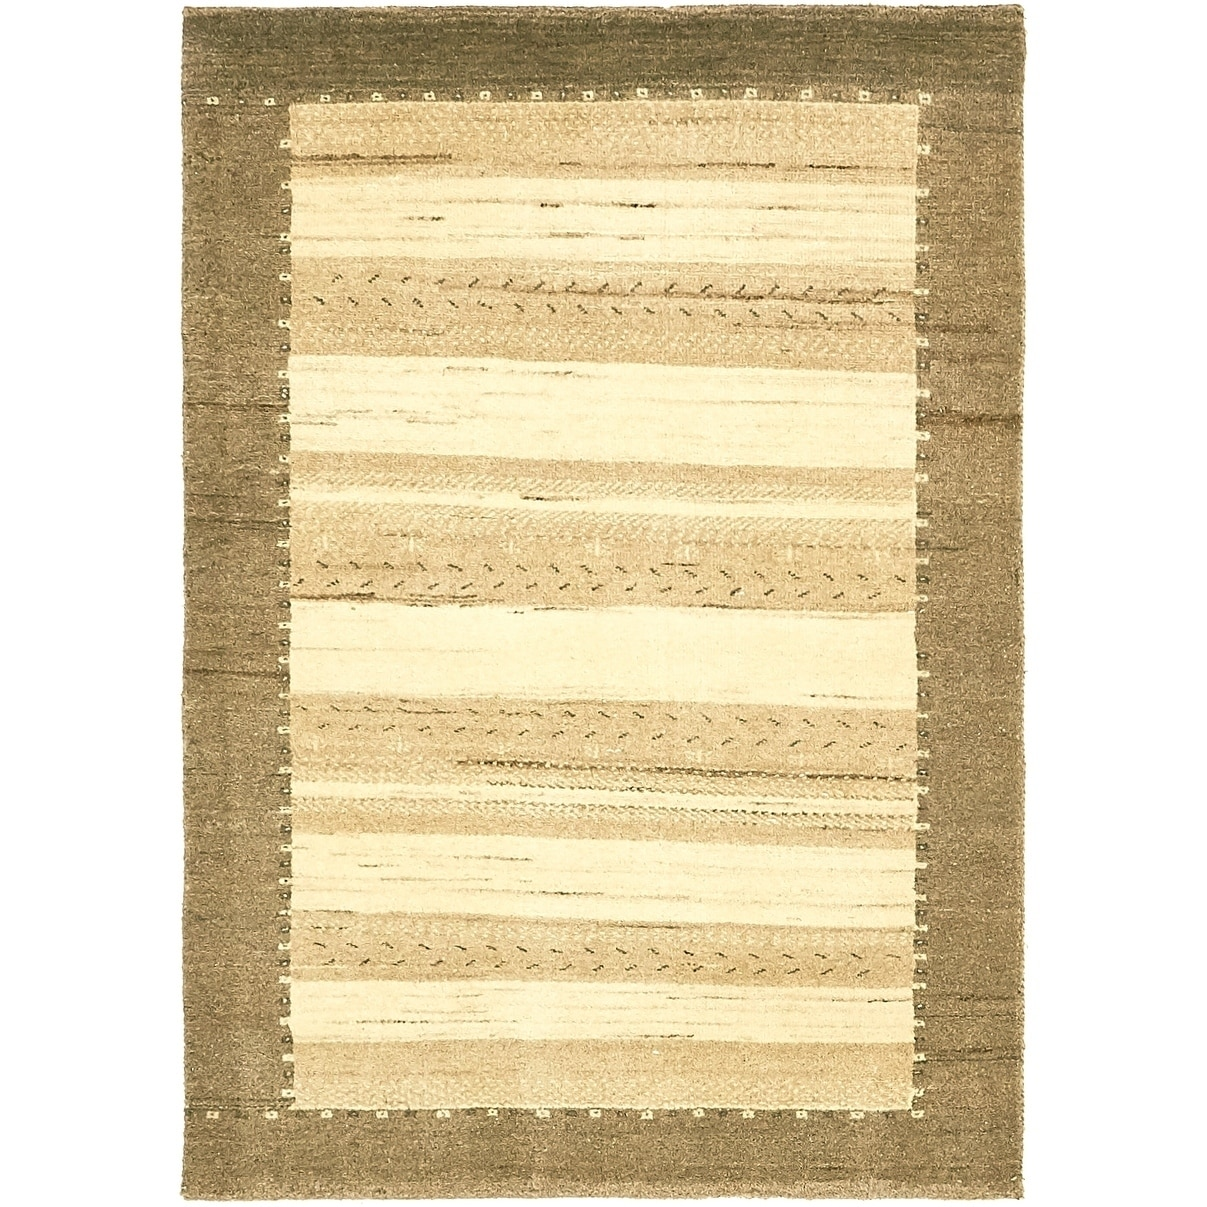 Hand Knotted Kashkuli Gabbeh Wool Area Rug - 3 4 x 4 9 (Cream - 3 4 x 4 9)